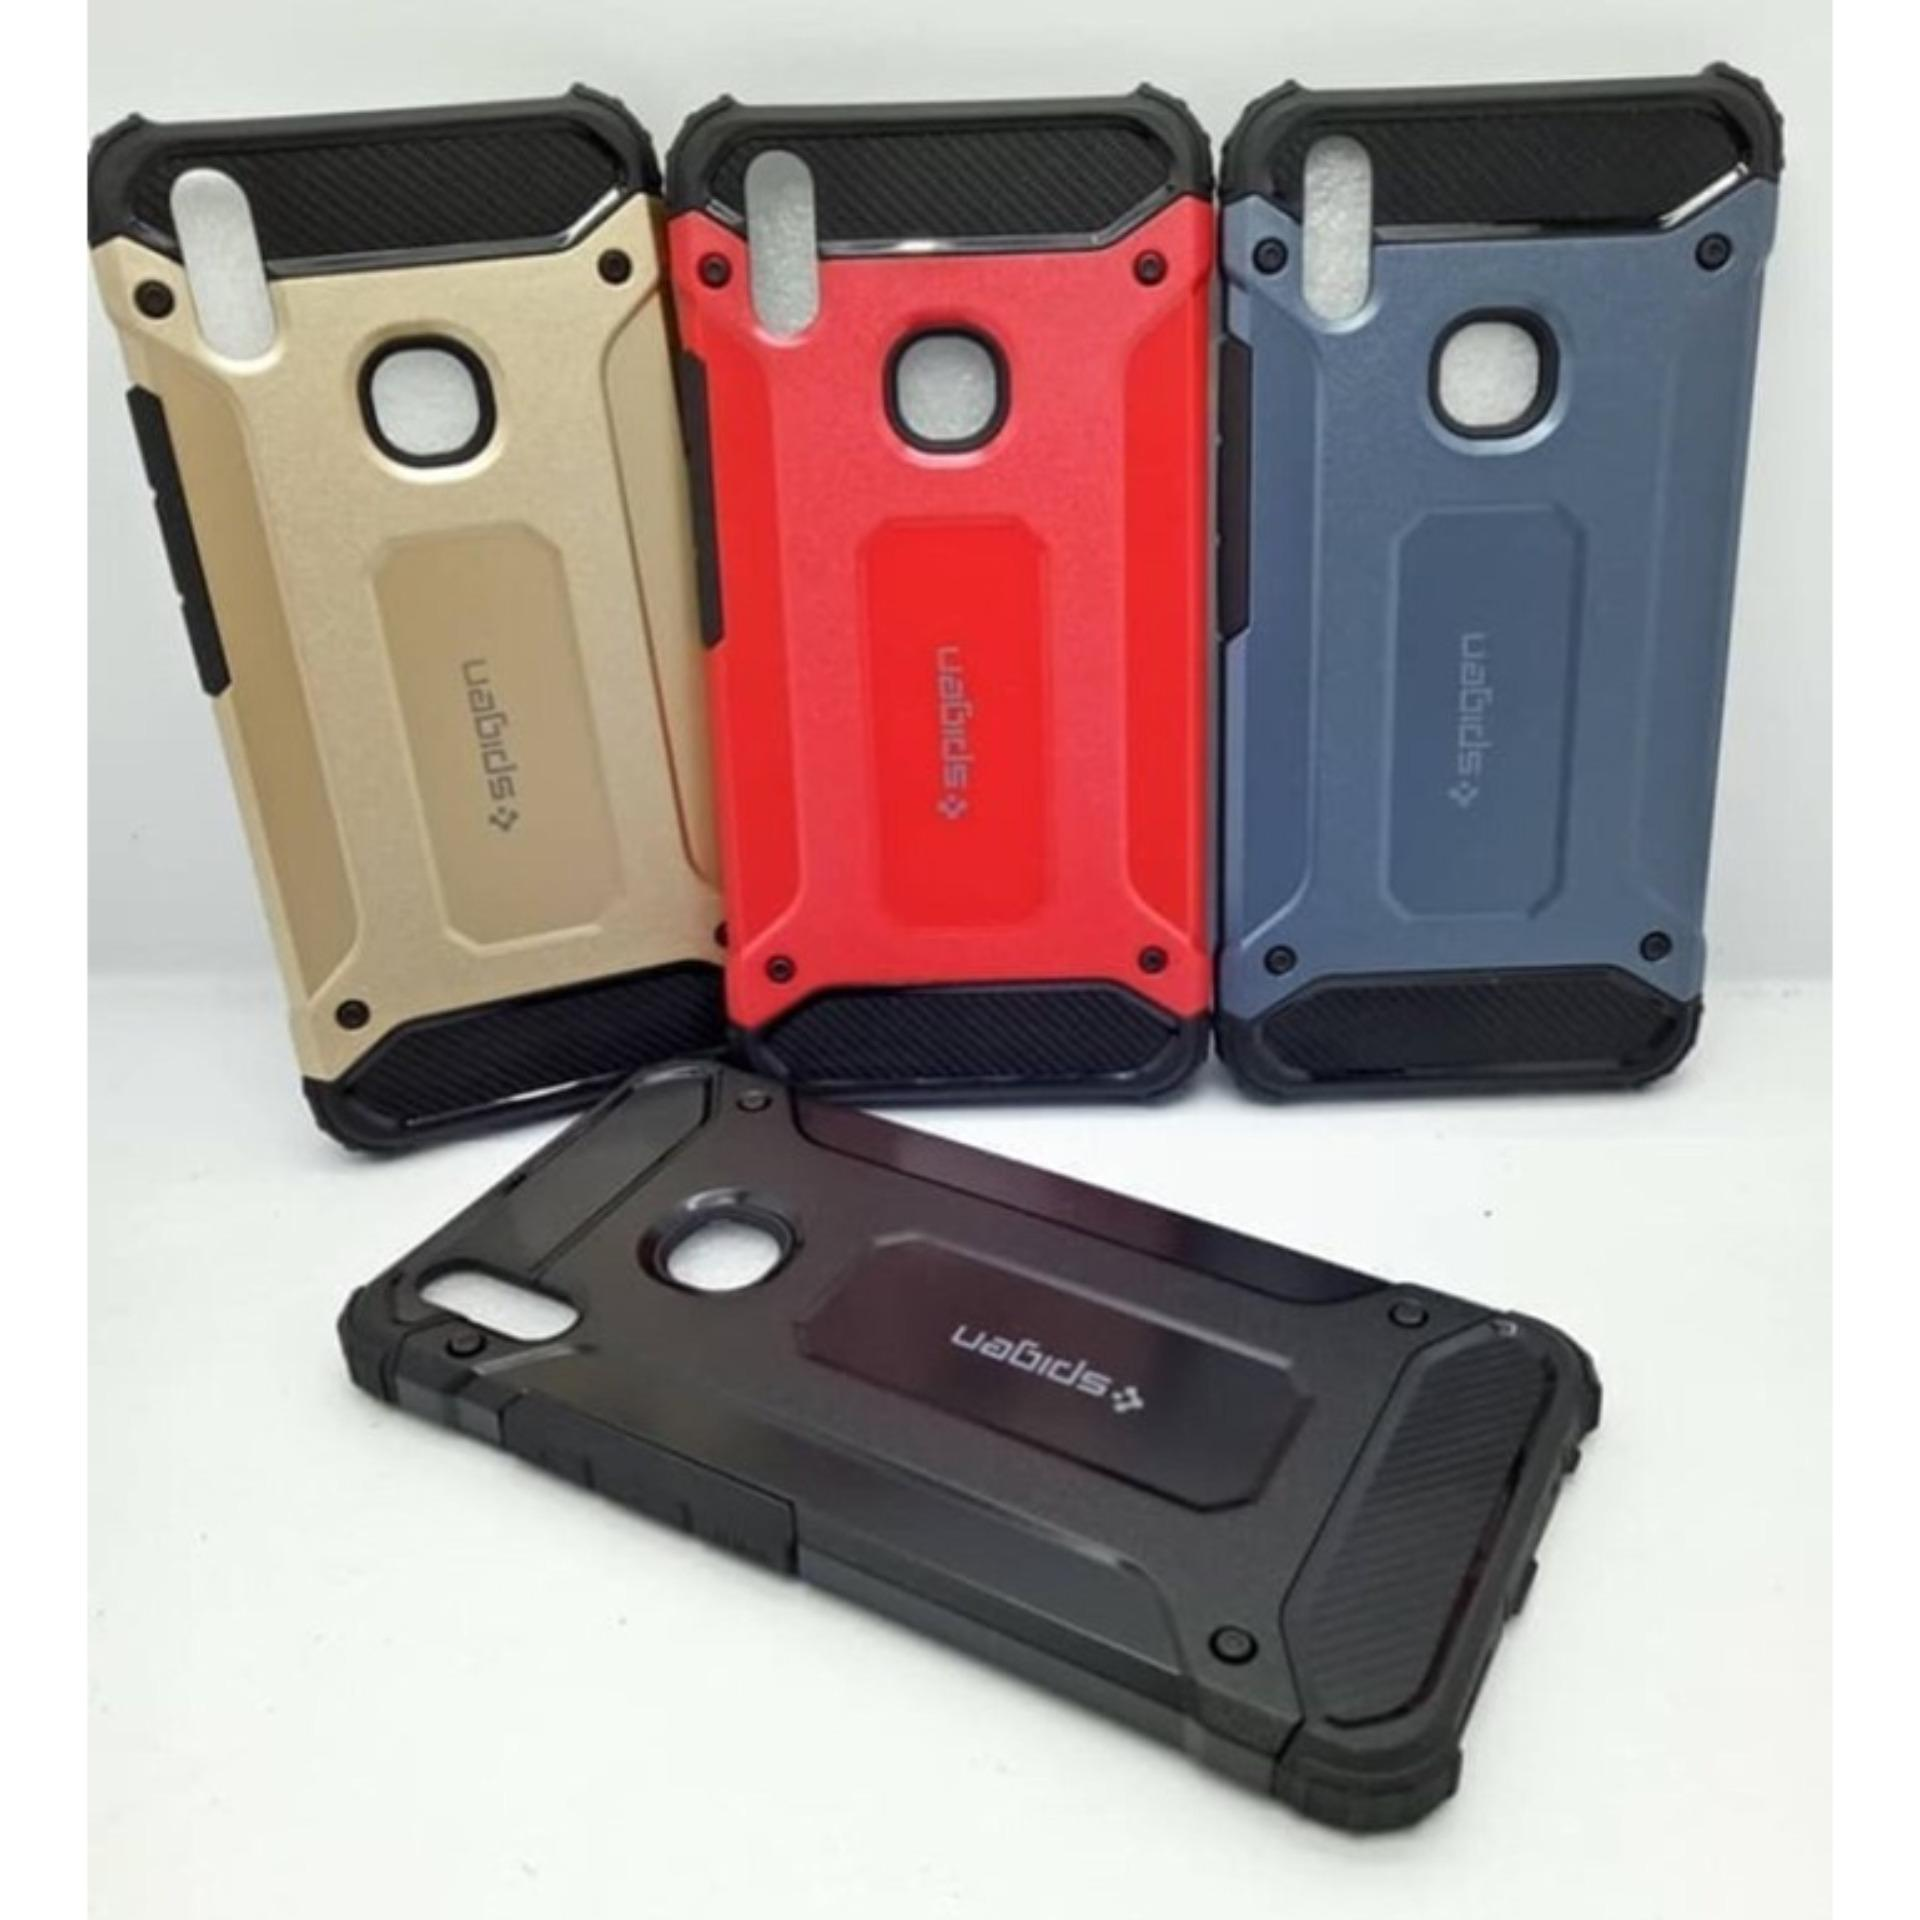 Buy Sell Cheapest Vivo V9 Red Best Quality Product Deals Black Gold Case Hard Cover Robot Shockproof Armor For